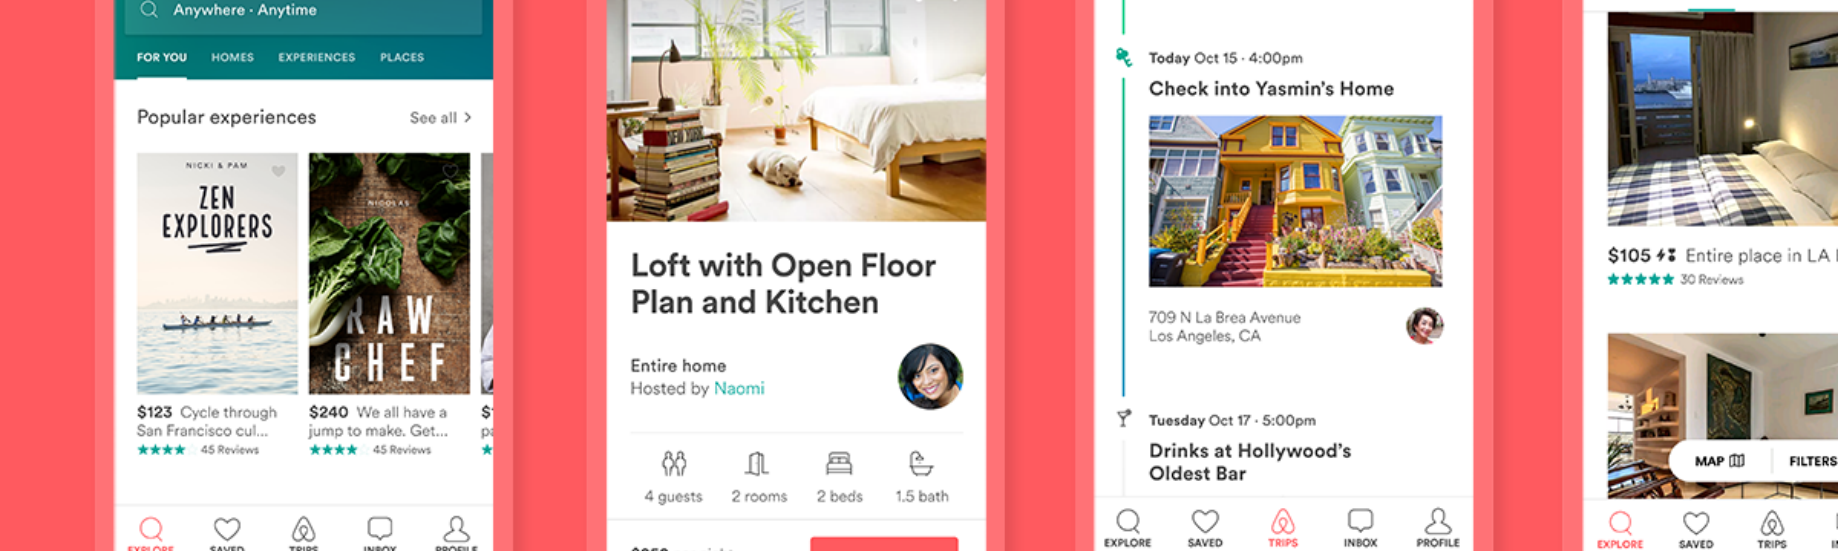 Airbnb is Dropping React Native — Should You Too? - Braus Blog - Medium